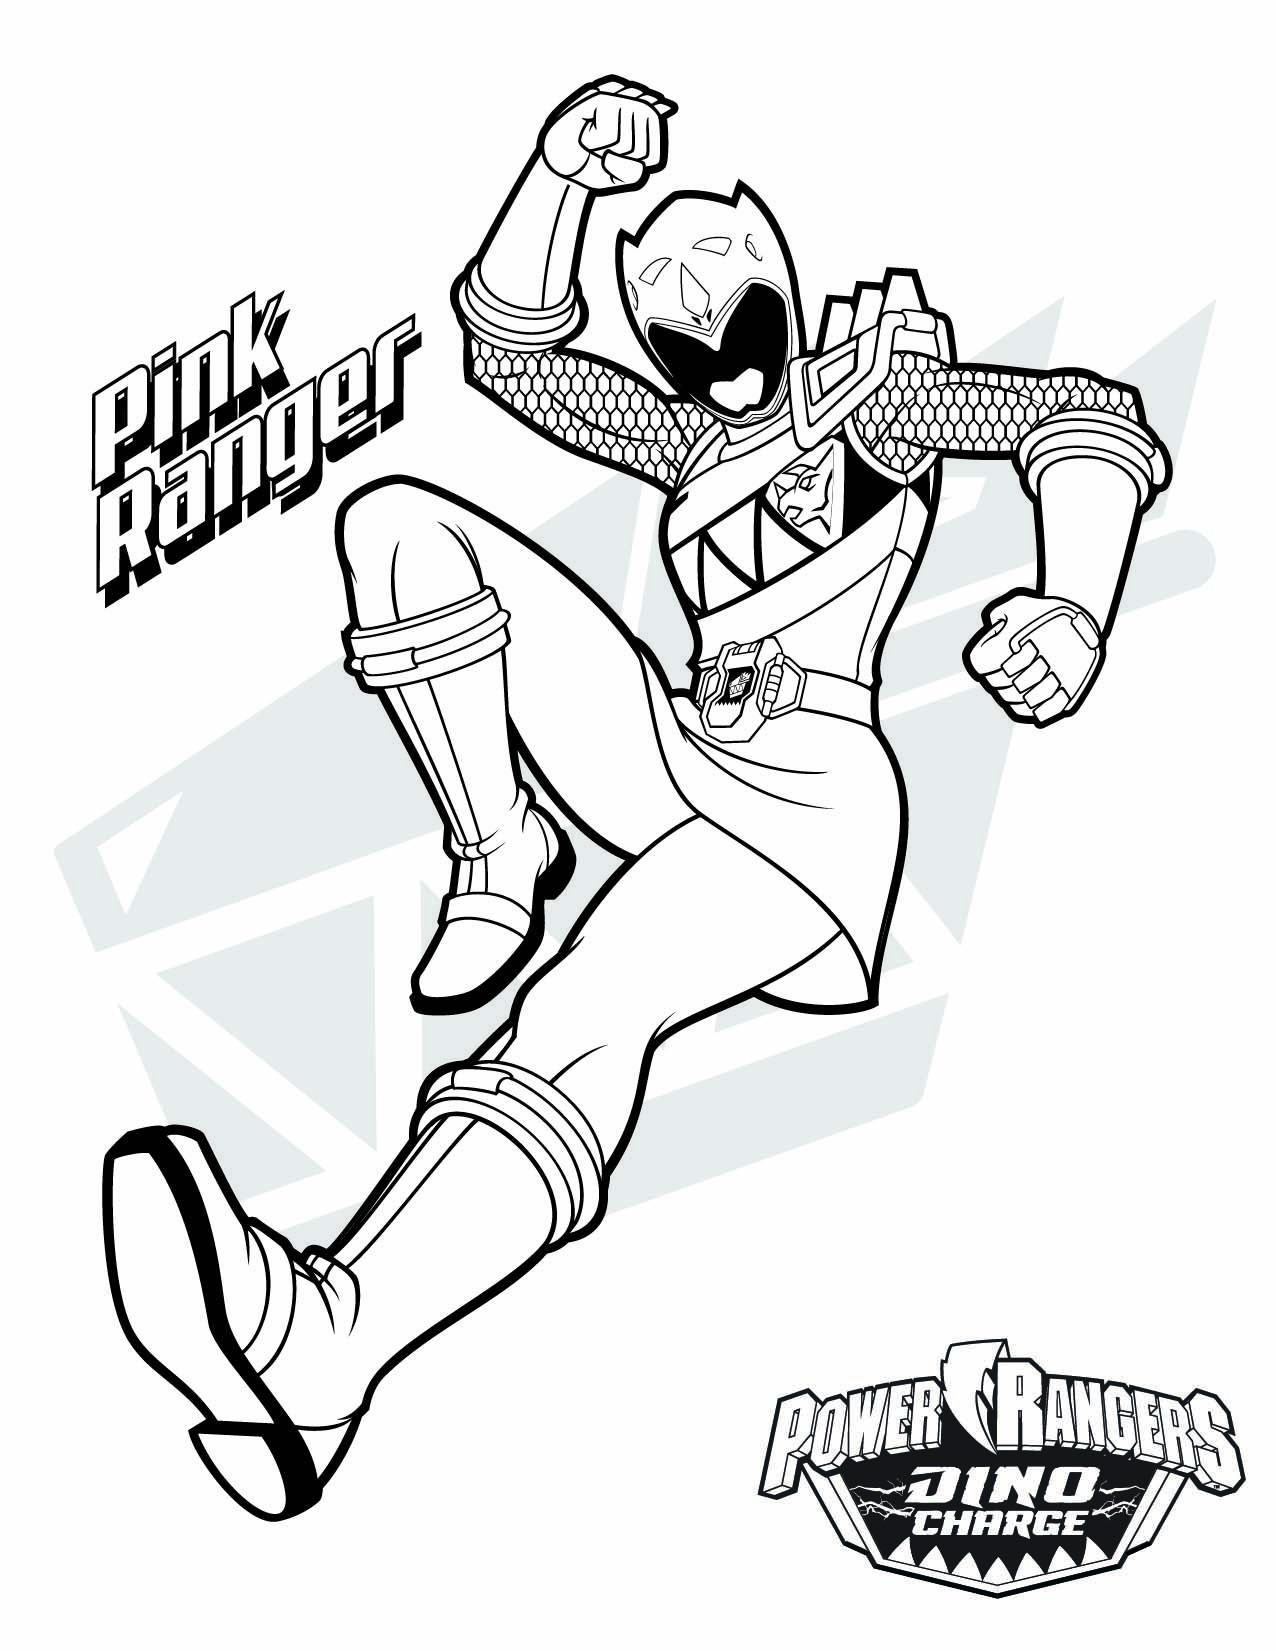 Pin by Power Rangers on Power Rangers Coloring Pages in 2019 | Power ...